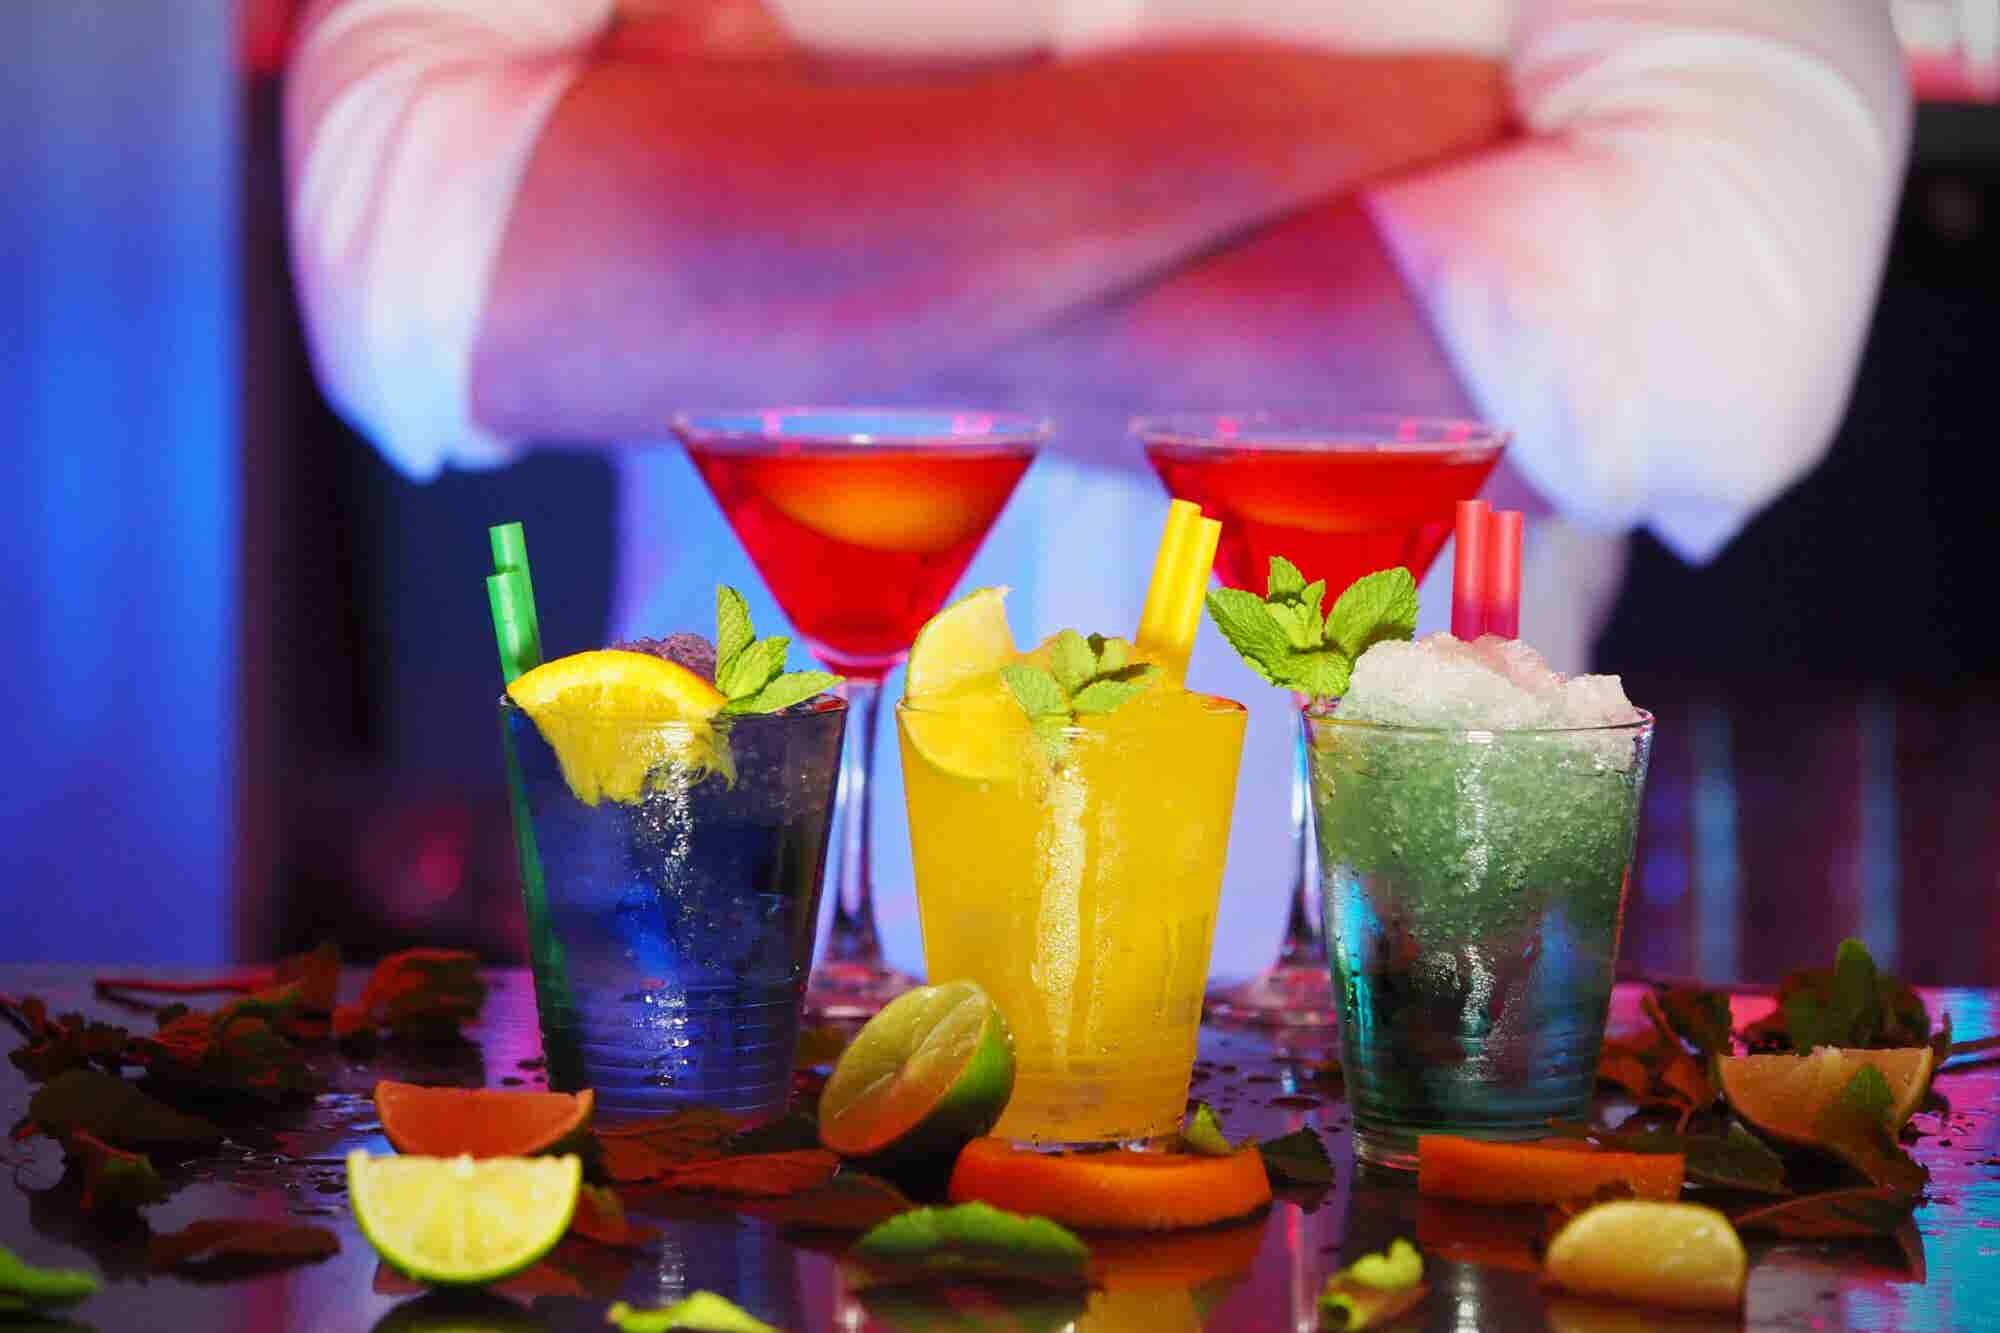 Master The Art Of Mixology With These Cocktail Recipes & Impress Your Co-Workers